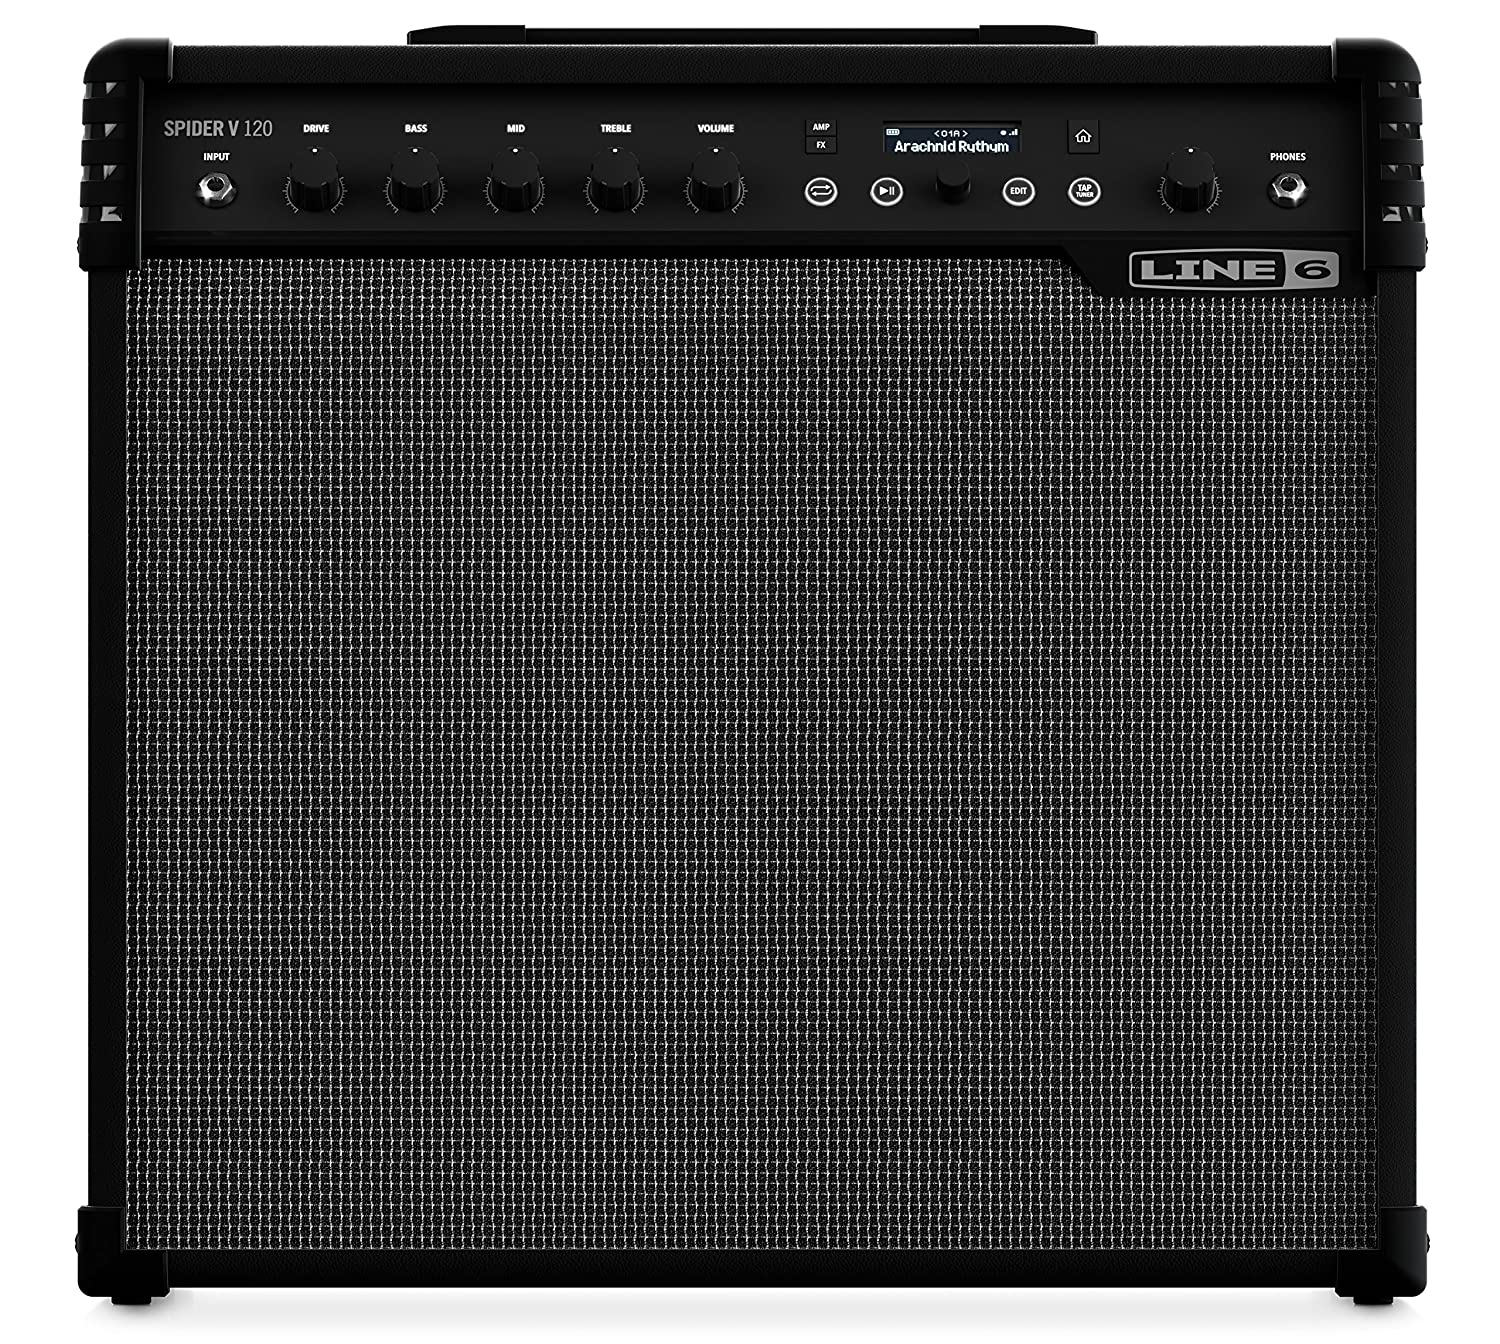 Amazon.com: Line 6 Spider V 120 Wireless Ready Modeling Amplifier: Line 6:  Musical Instruments